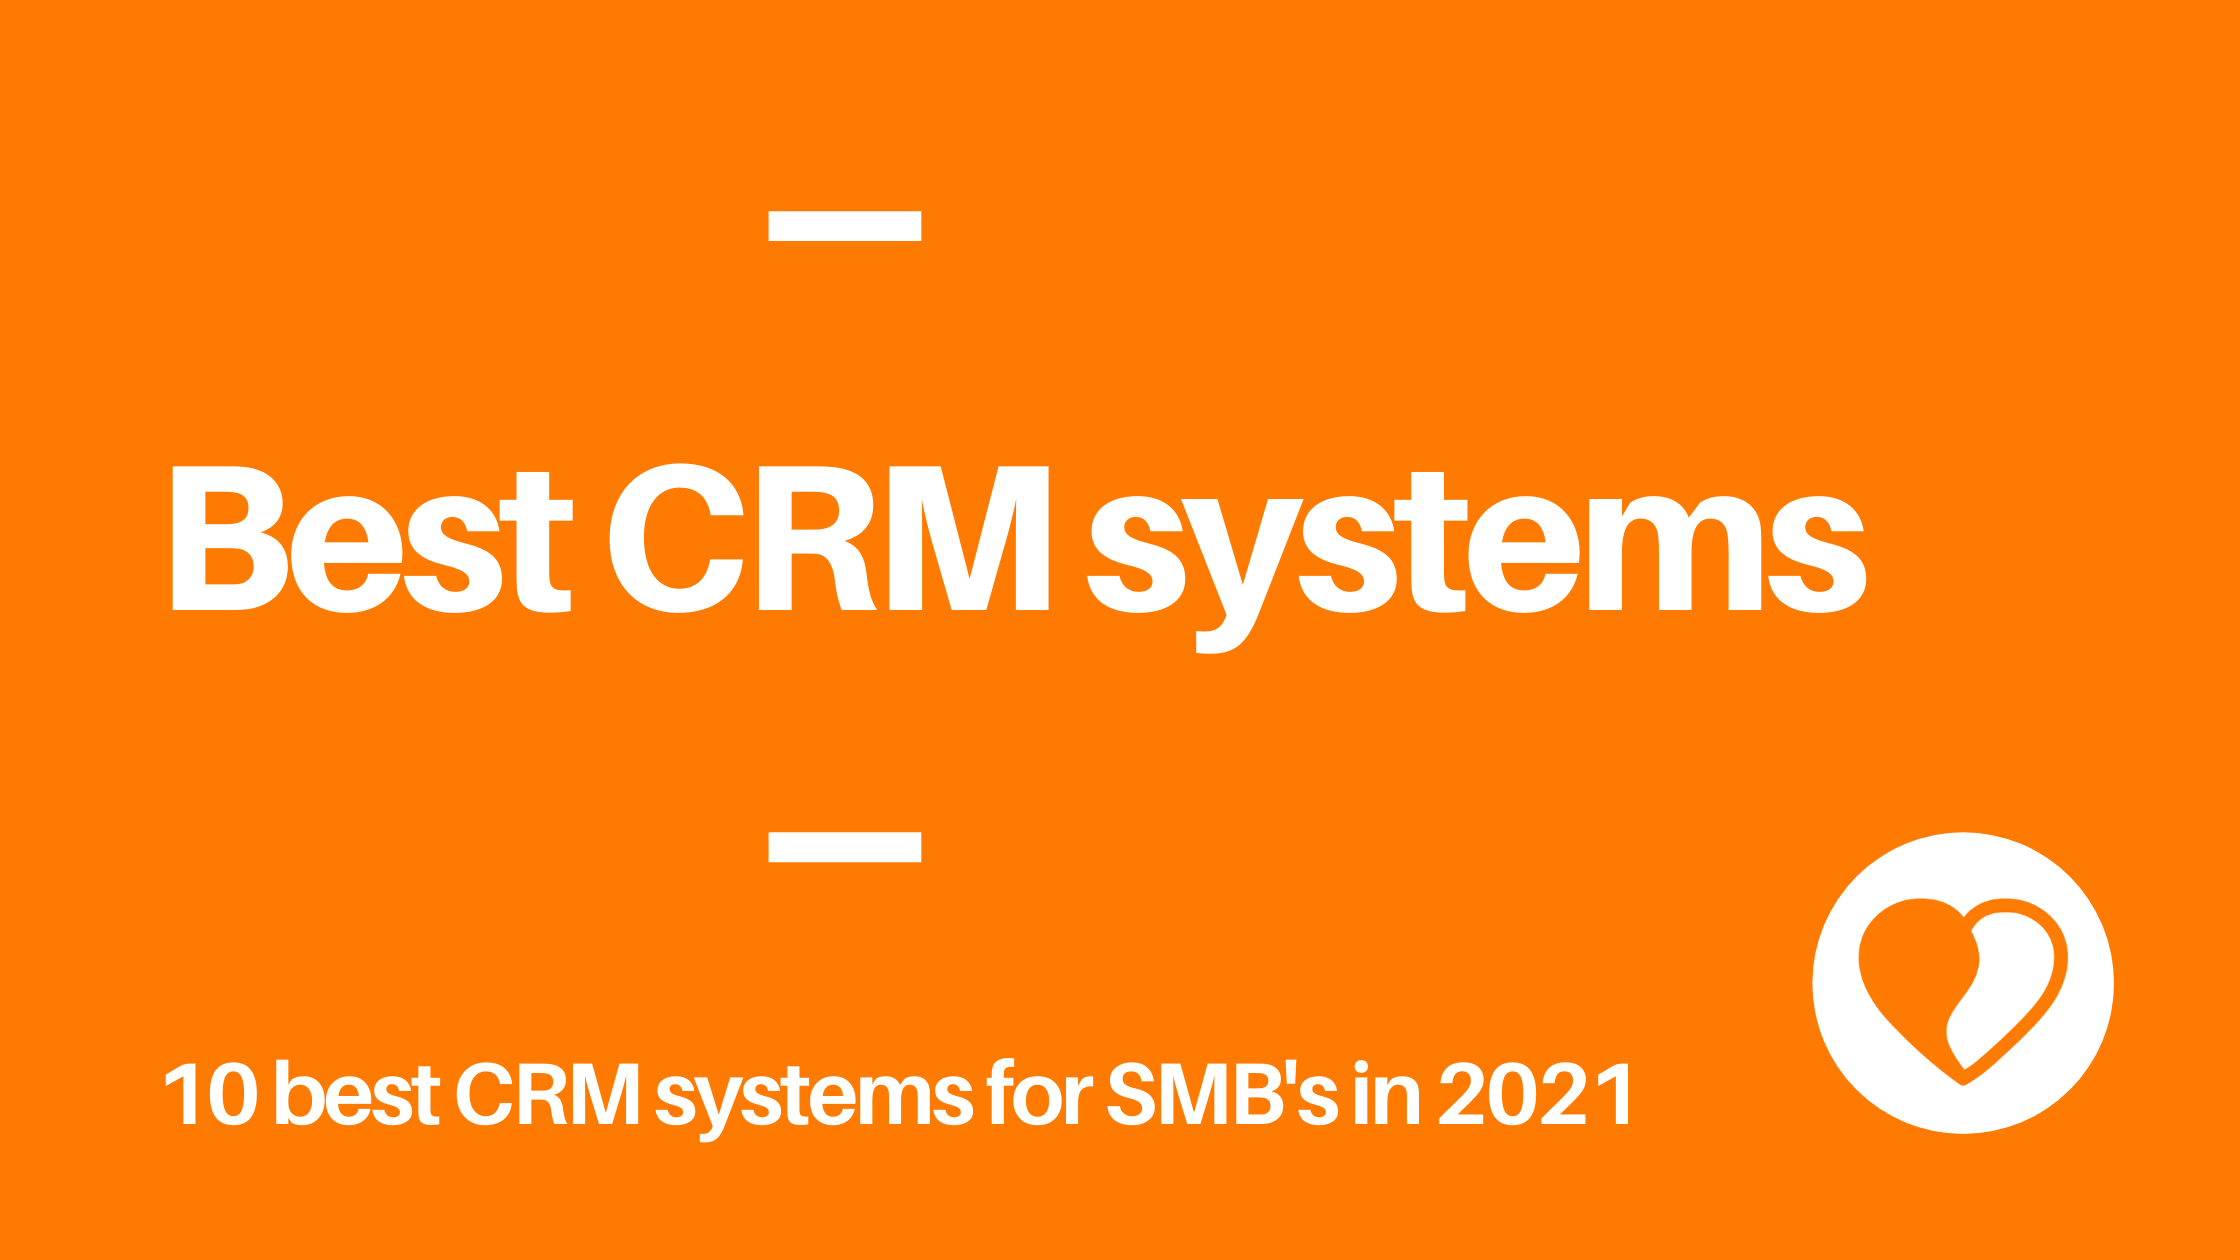 What are the best CRM systems for SMB in 2021